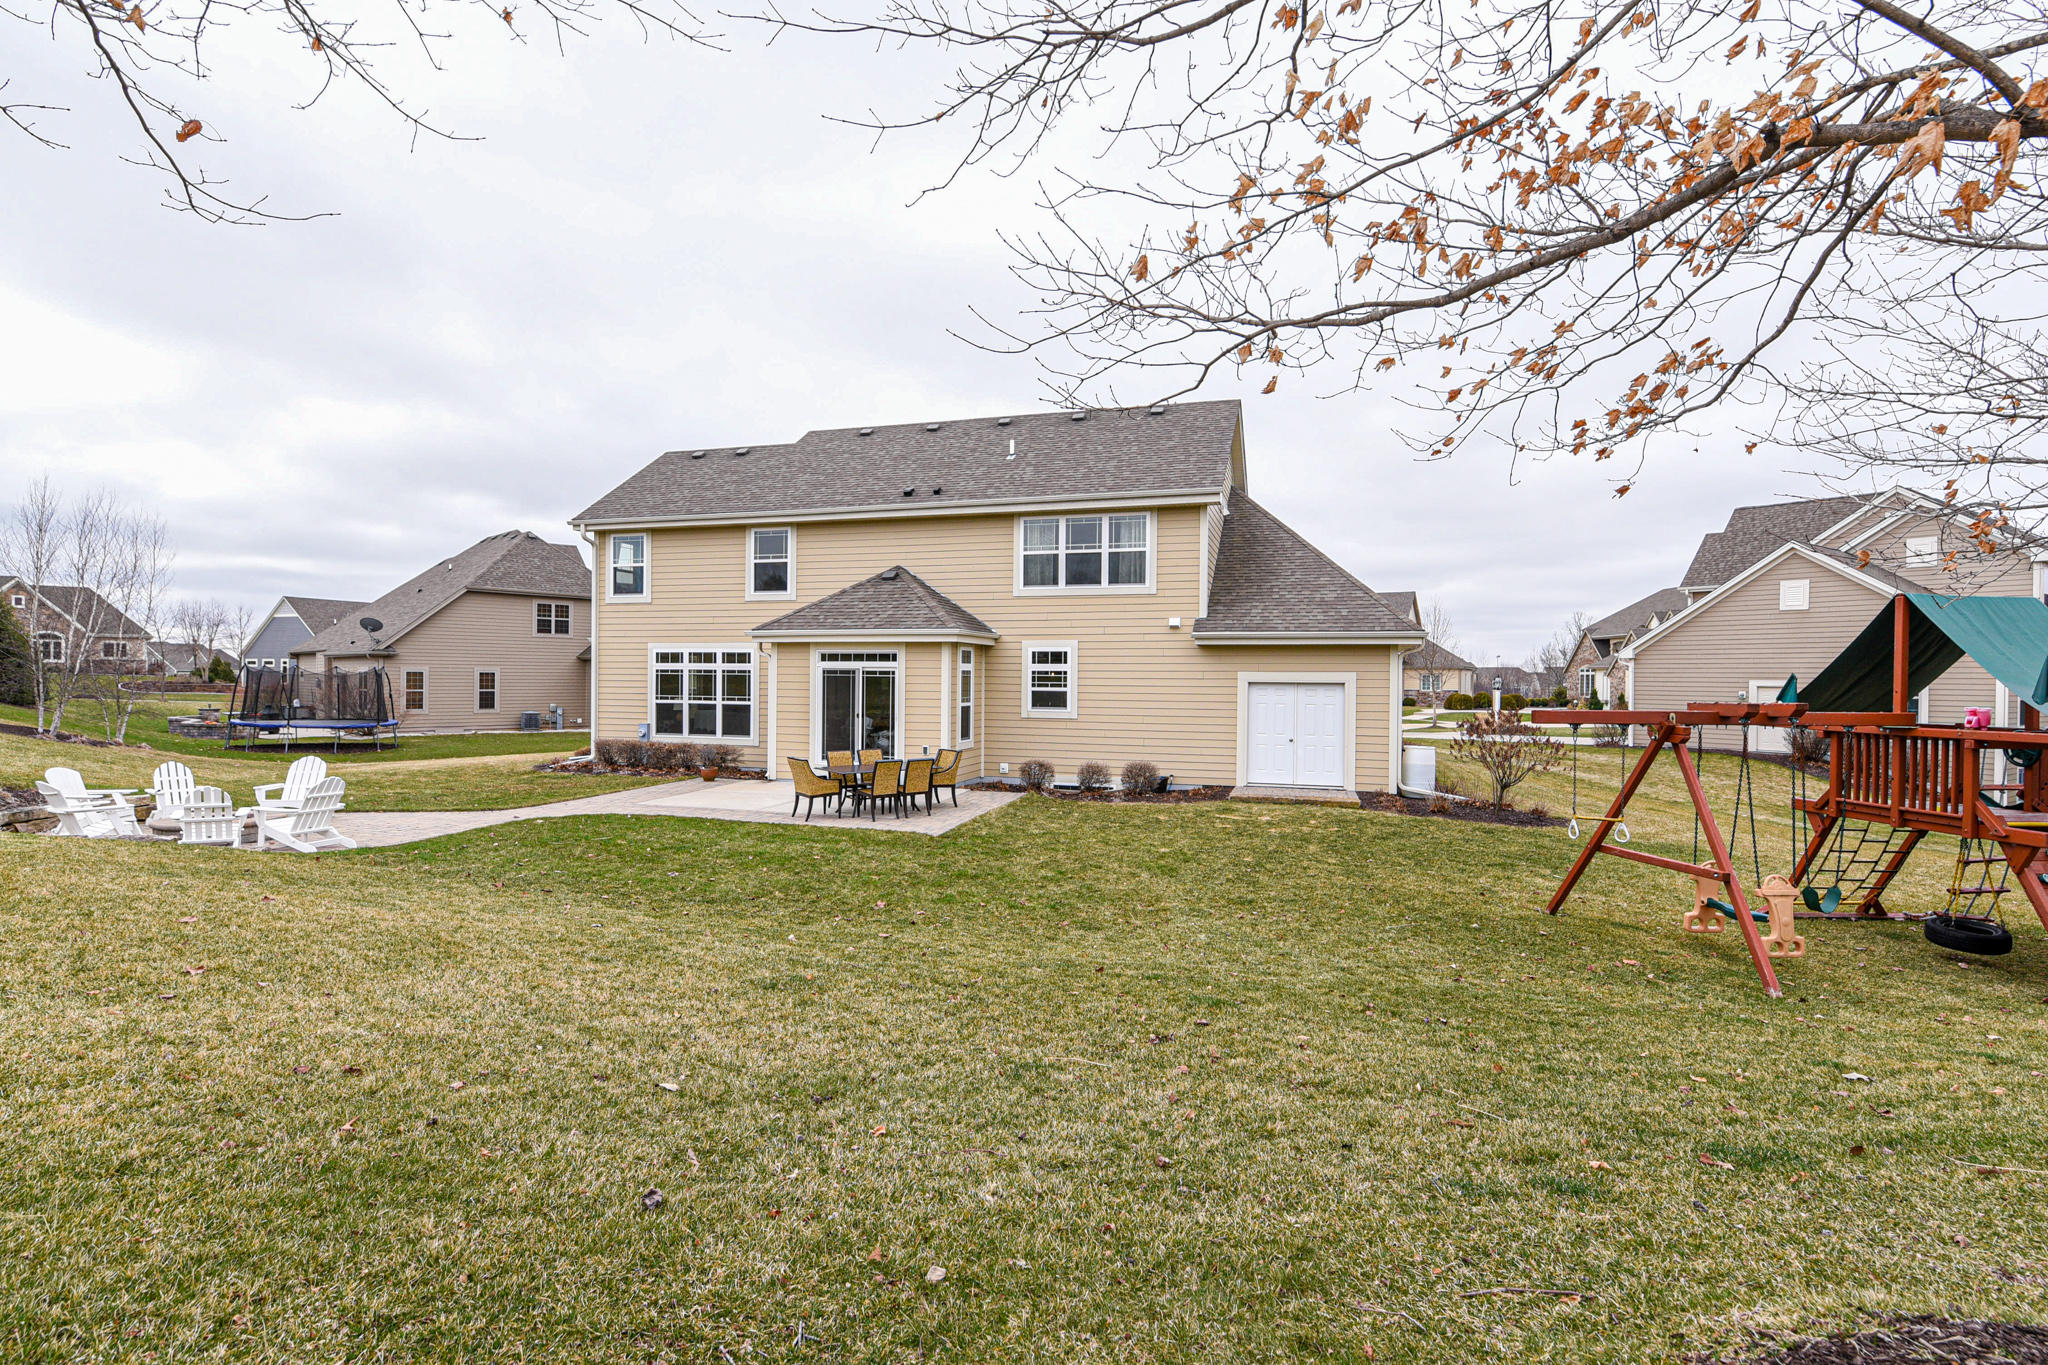 2807 Mohican Cir, Waukesha, Wisconsin 53189, 4 Bedrooms Bedrooms, 9 Rooms Rooms,3 BathroomsBathrooms,Single-Family,For Sale,Mohican Cir,1683610